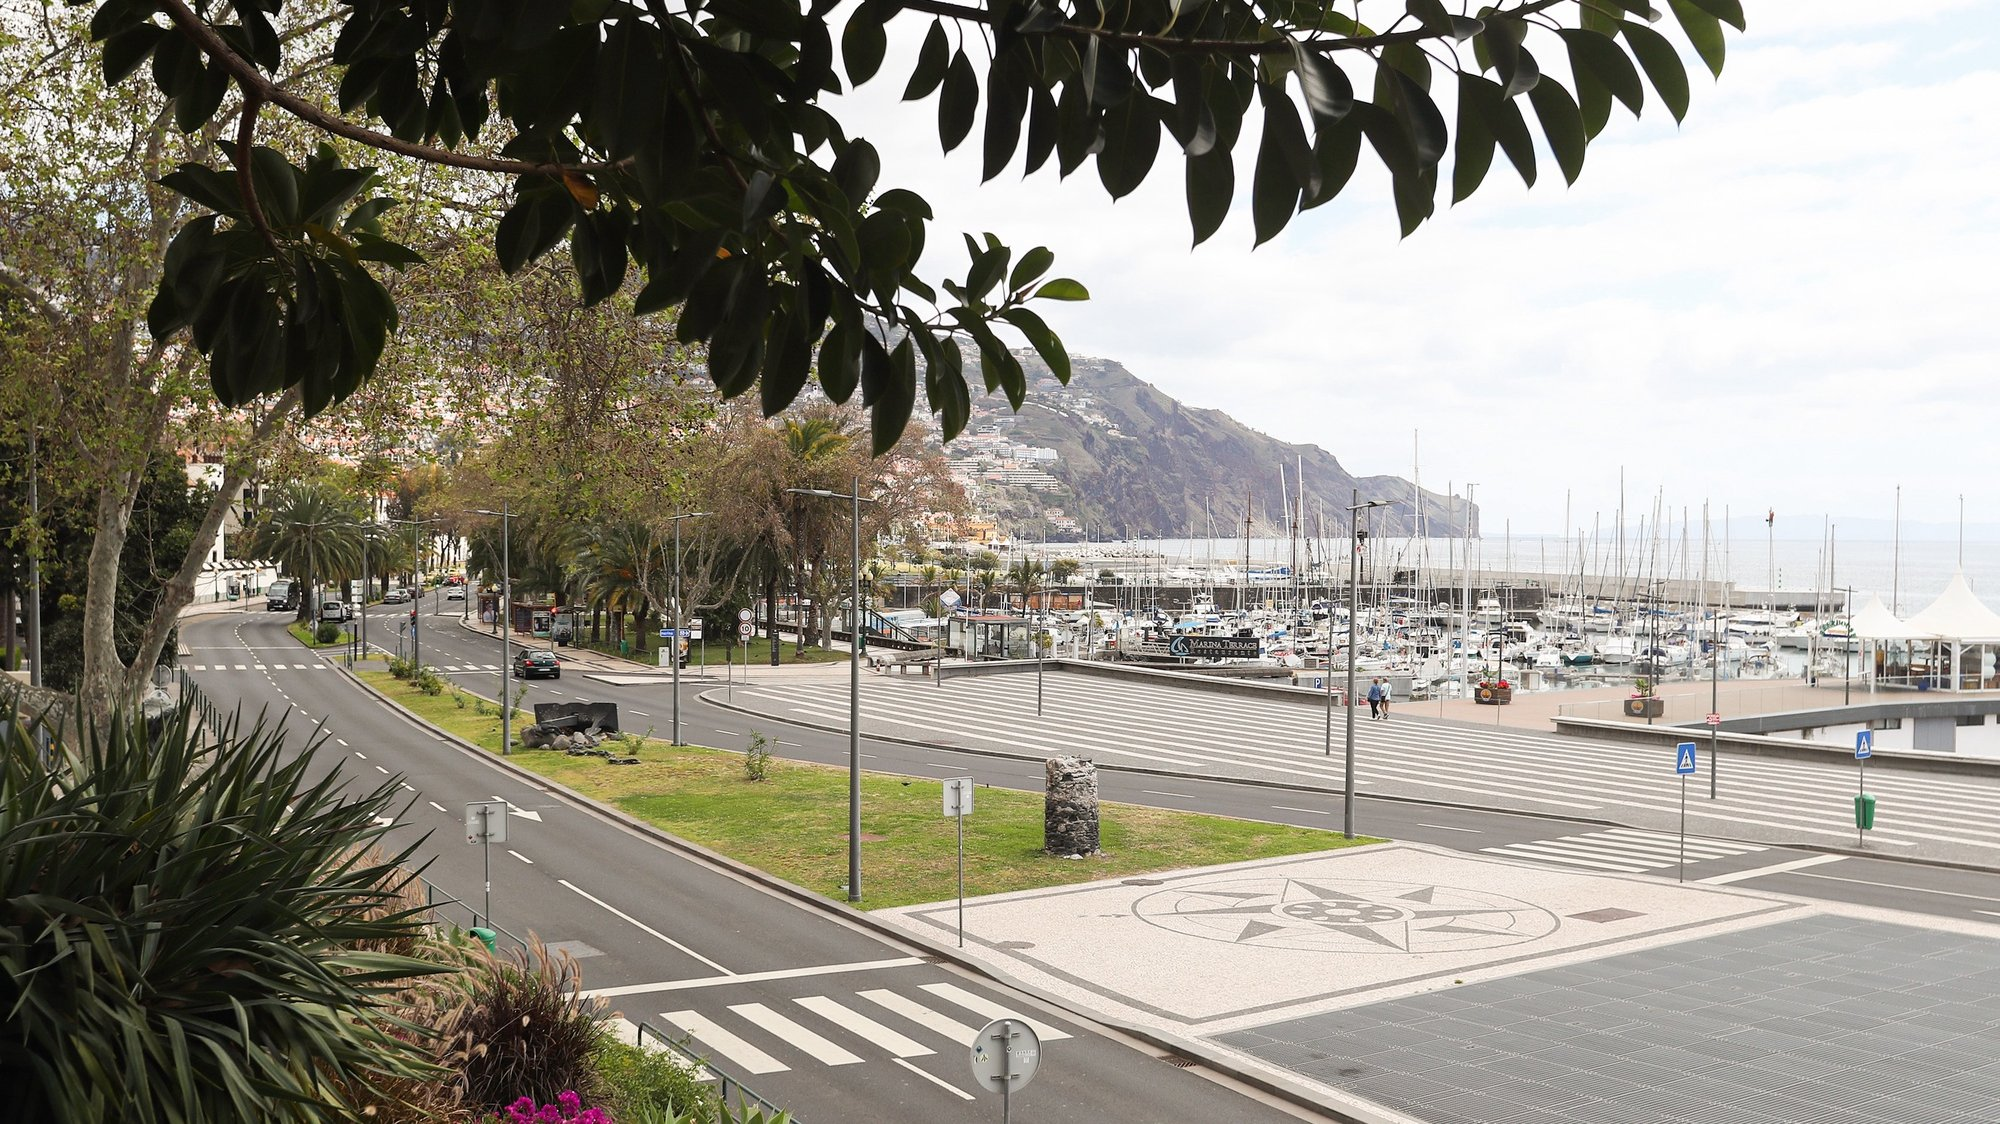 An empty street due to the pandemic of covid-19, in Funchal, Madeira Island, Portugal, 21 March 2020. In Portugal, there are 12 deaths and 1,280 confirmed infections. Portugal is in a state of emergency from 00:00 on March 19th until 23:59 on April 2nd. HOMEM DE GOUVEIA/LUSA